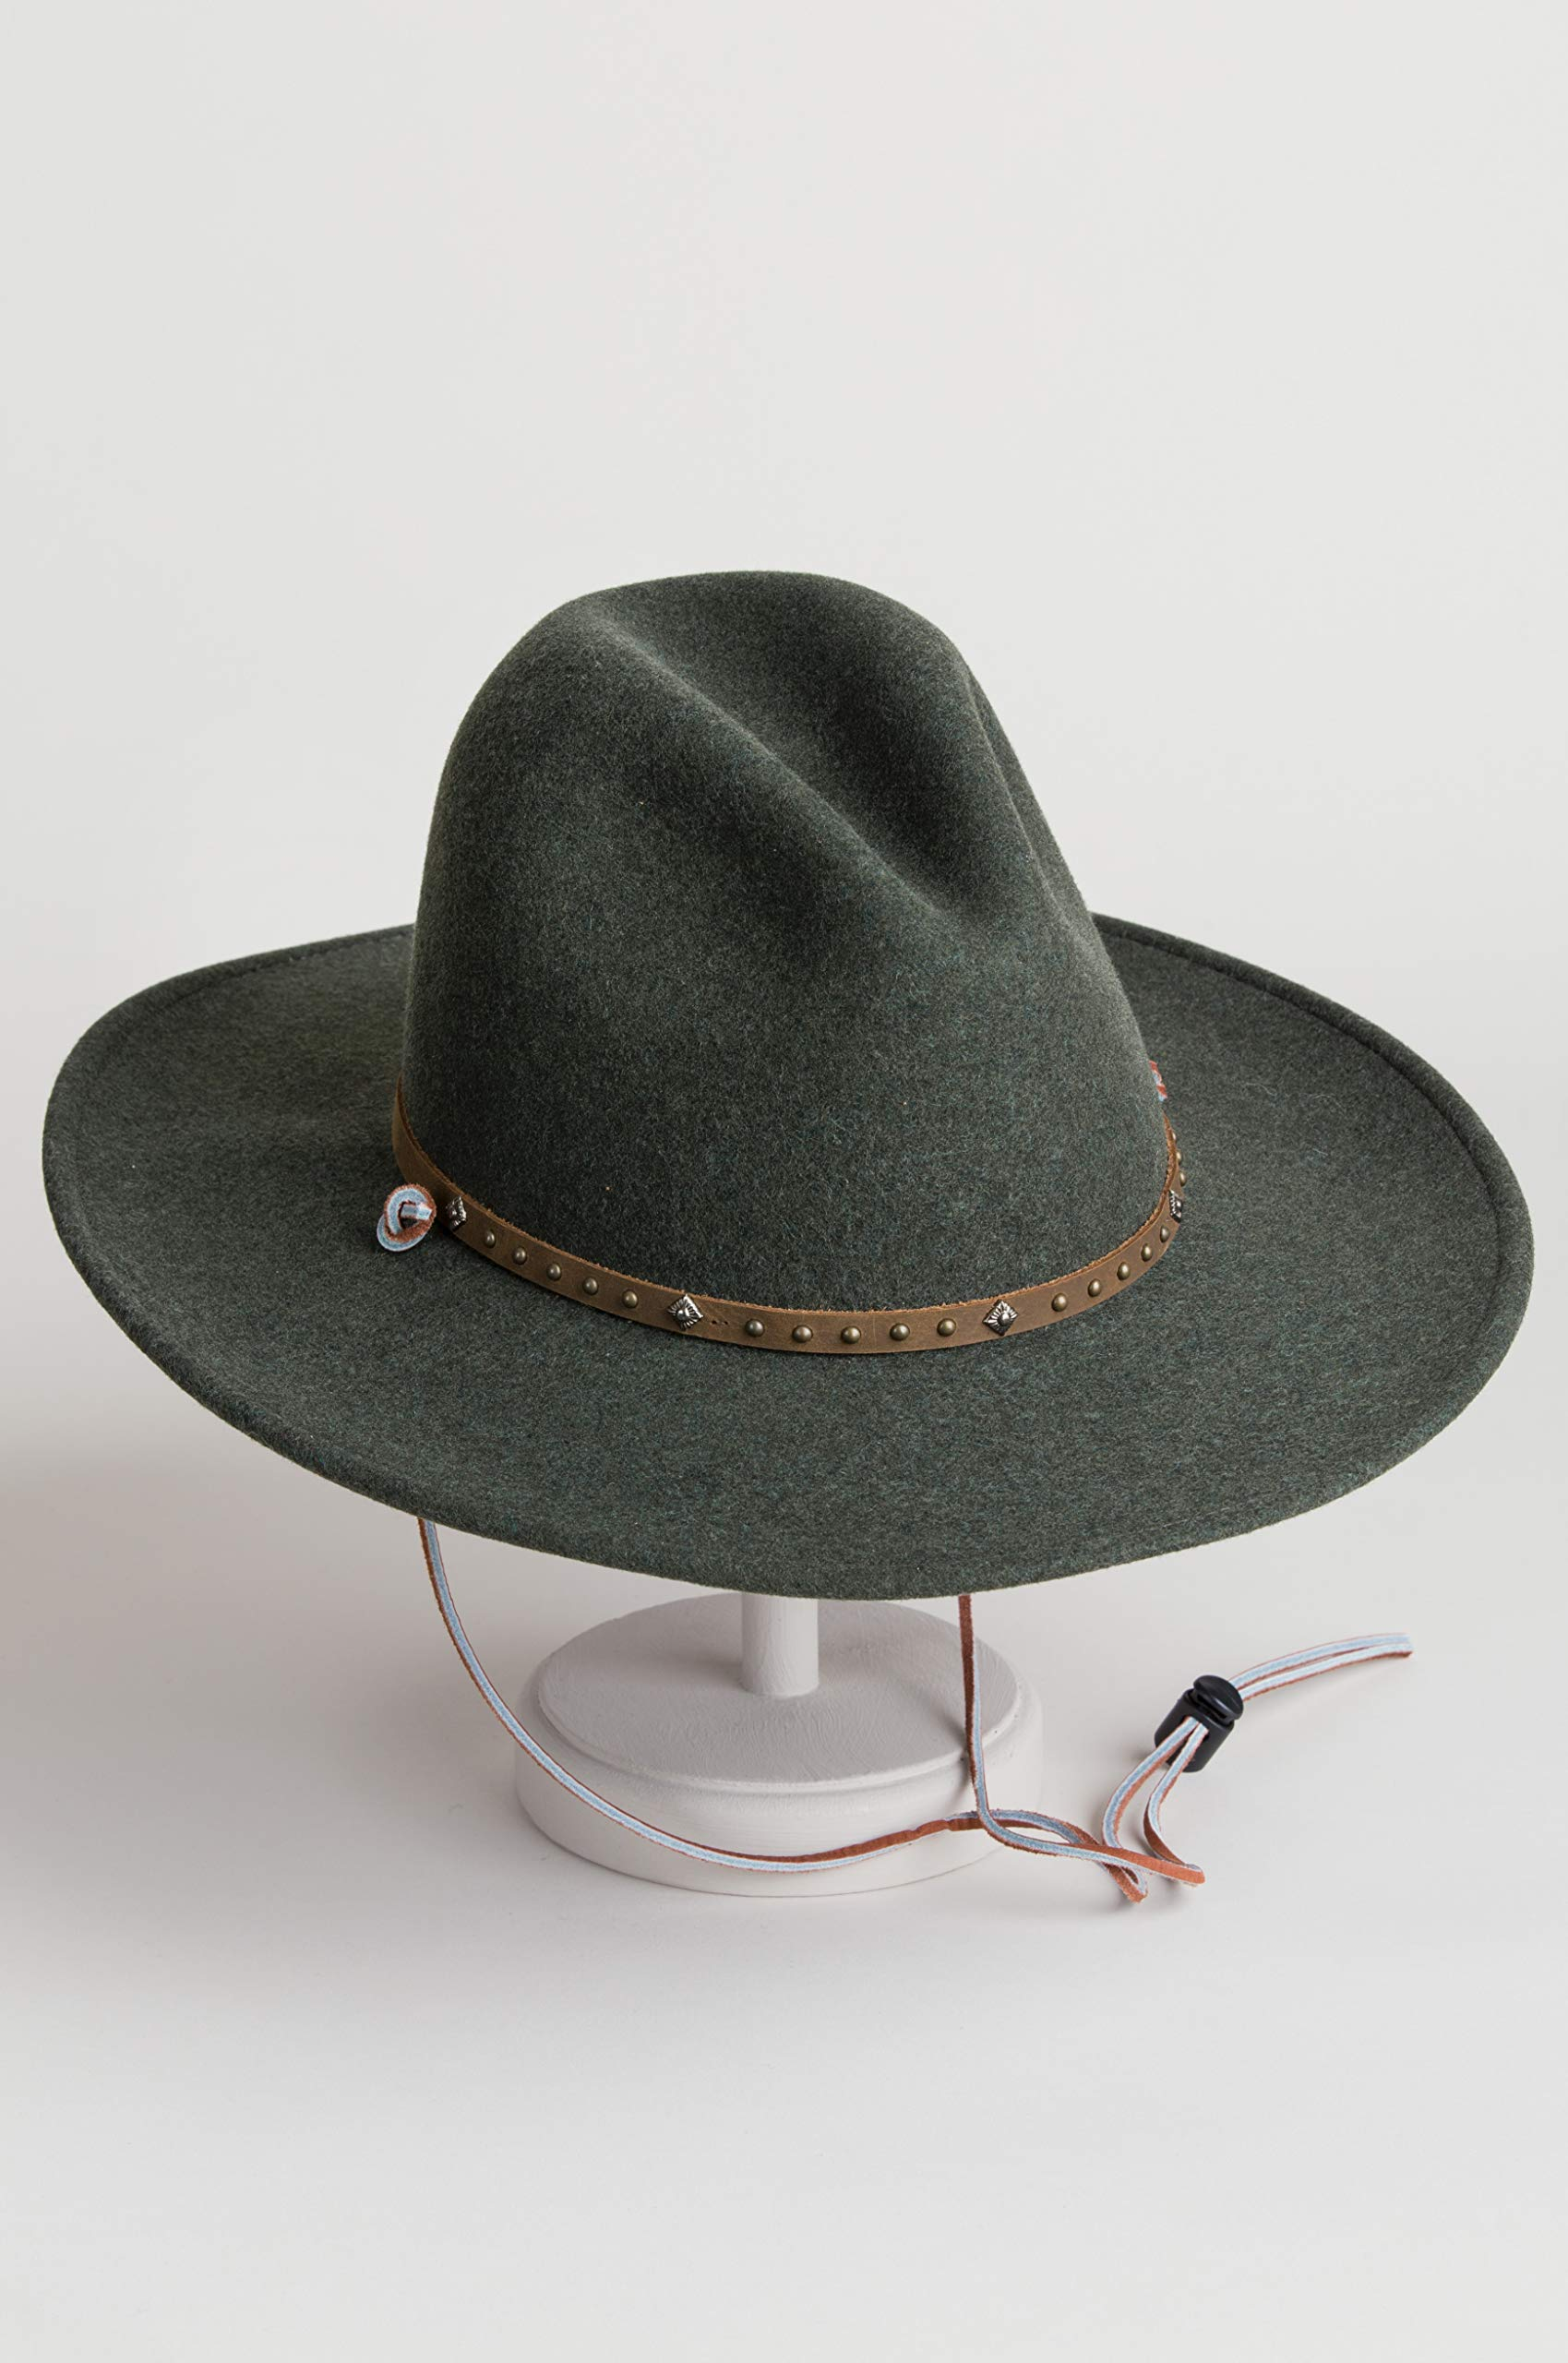 Men's Lonesome Trail Crushable Wool Stetson Hat, OLIVE MIX, Size SMALL by Stetson (Image #4)